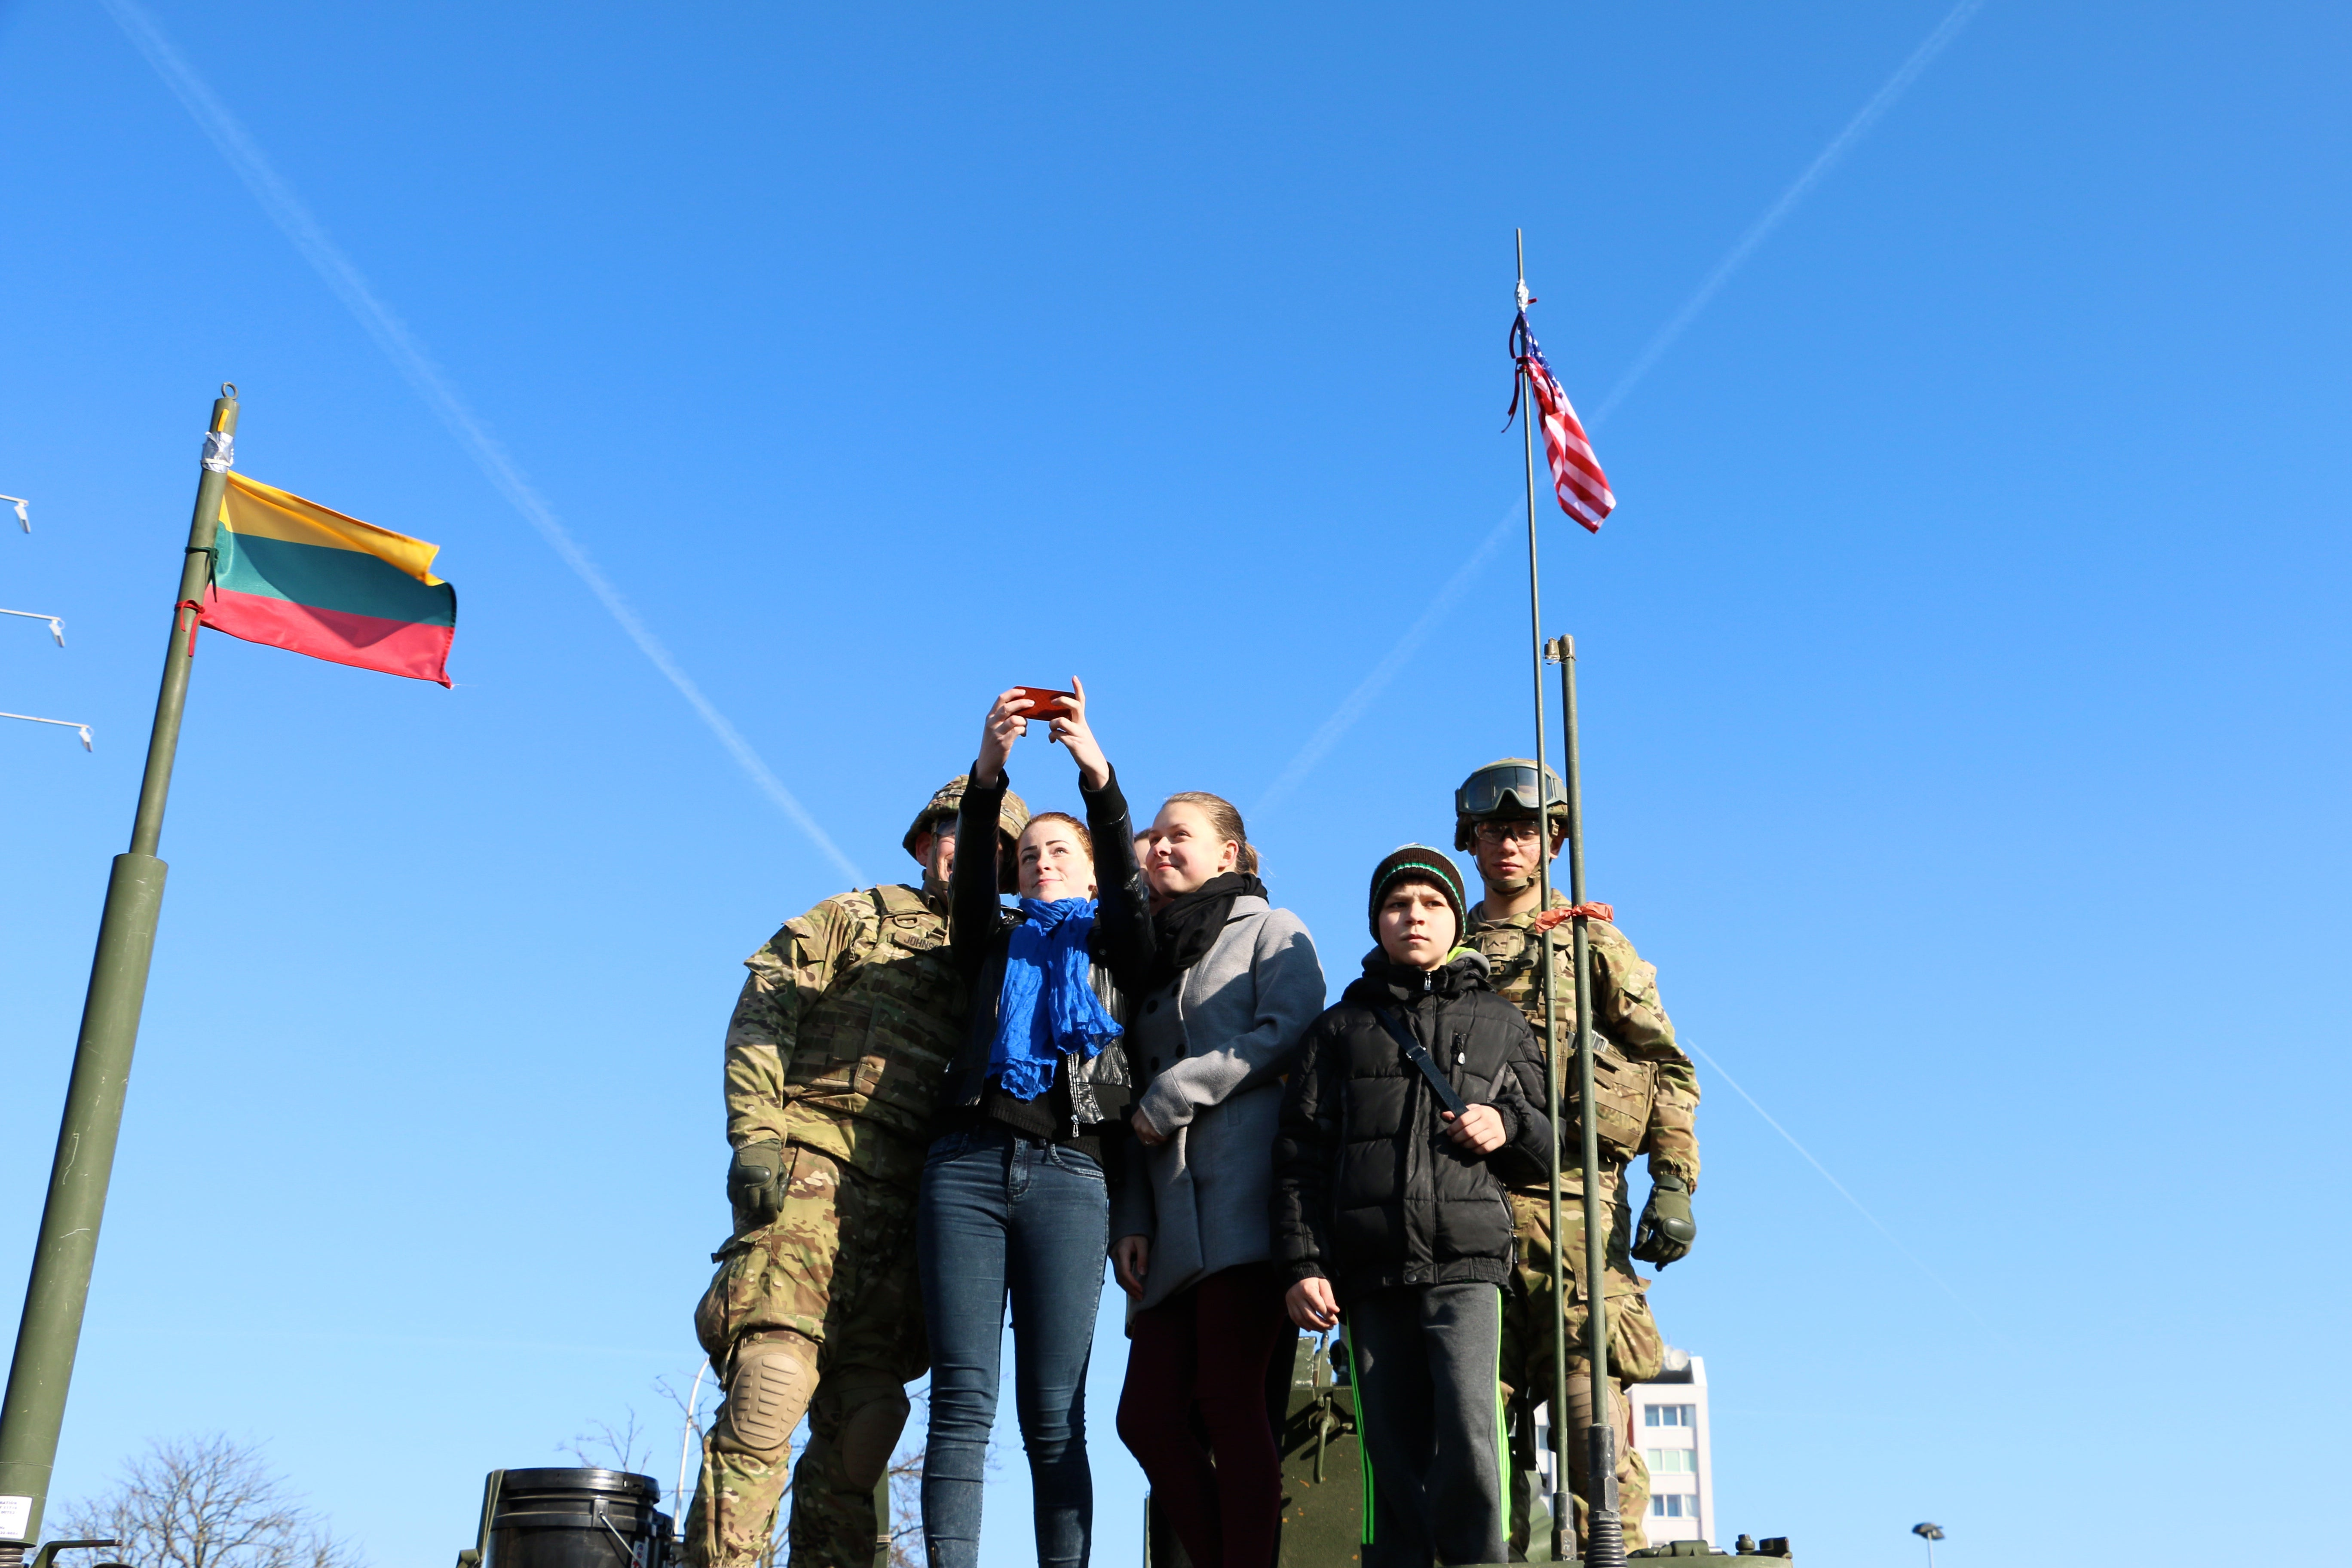 Lithuanians pose with U.S. Army soldiers at a U.S. Army Stryker static display in Marijampole, Lithuania on March 24.(Photo: Nolan Peterson/The Daily Signal)